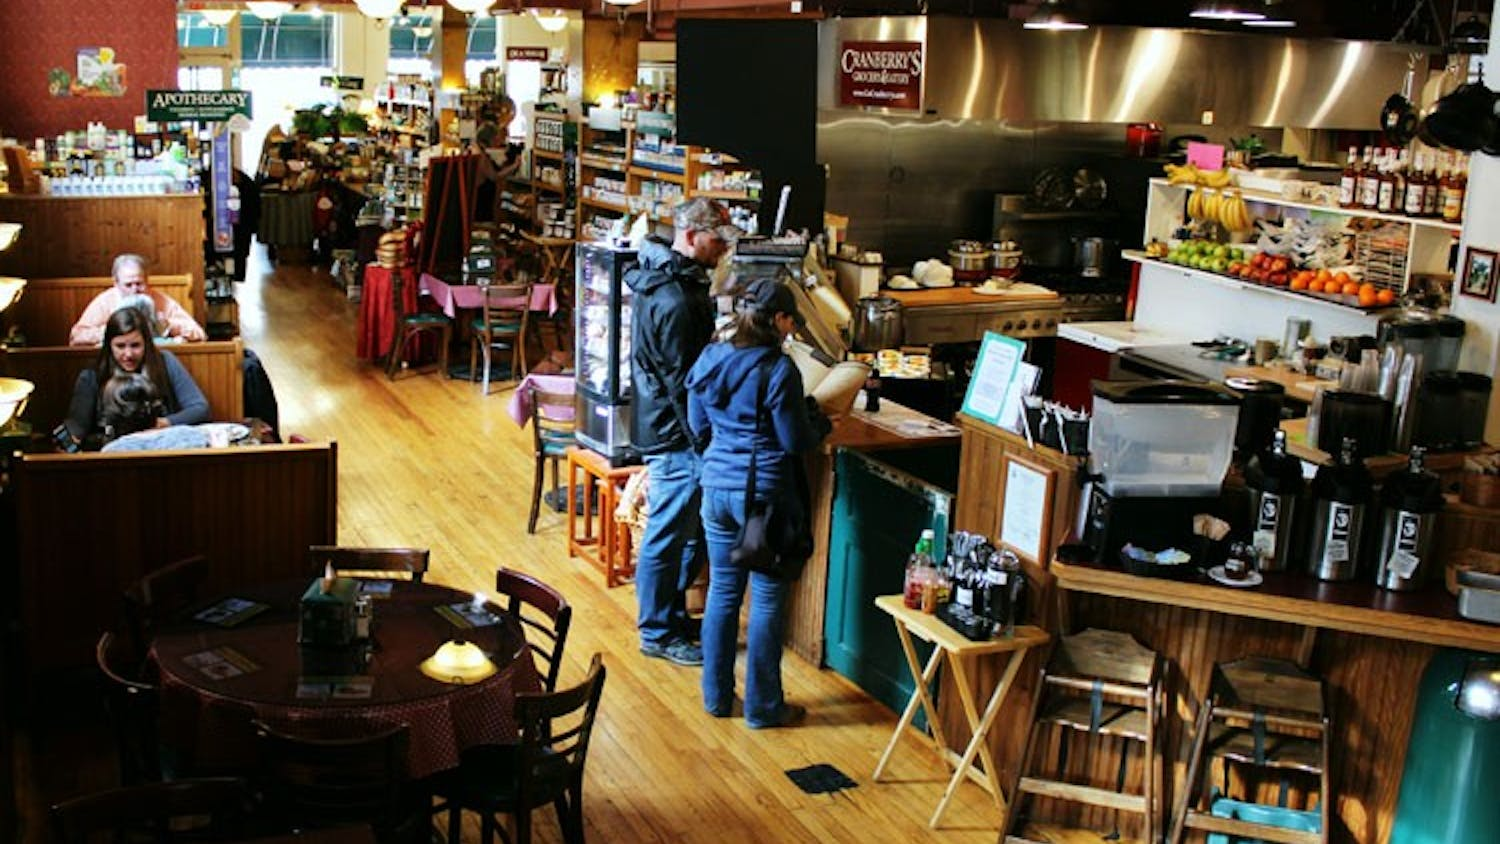 Cranberry's Grocery & Eatery offers a wide array of breakfast and lunch indulgences, a small grocery section and a cozy atmosphere.